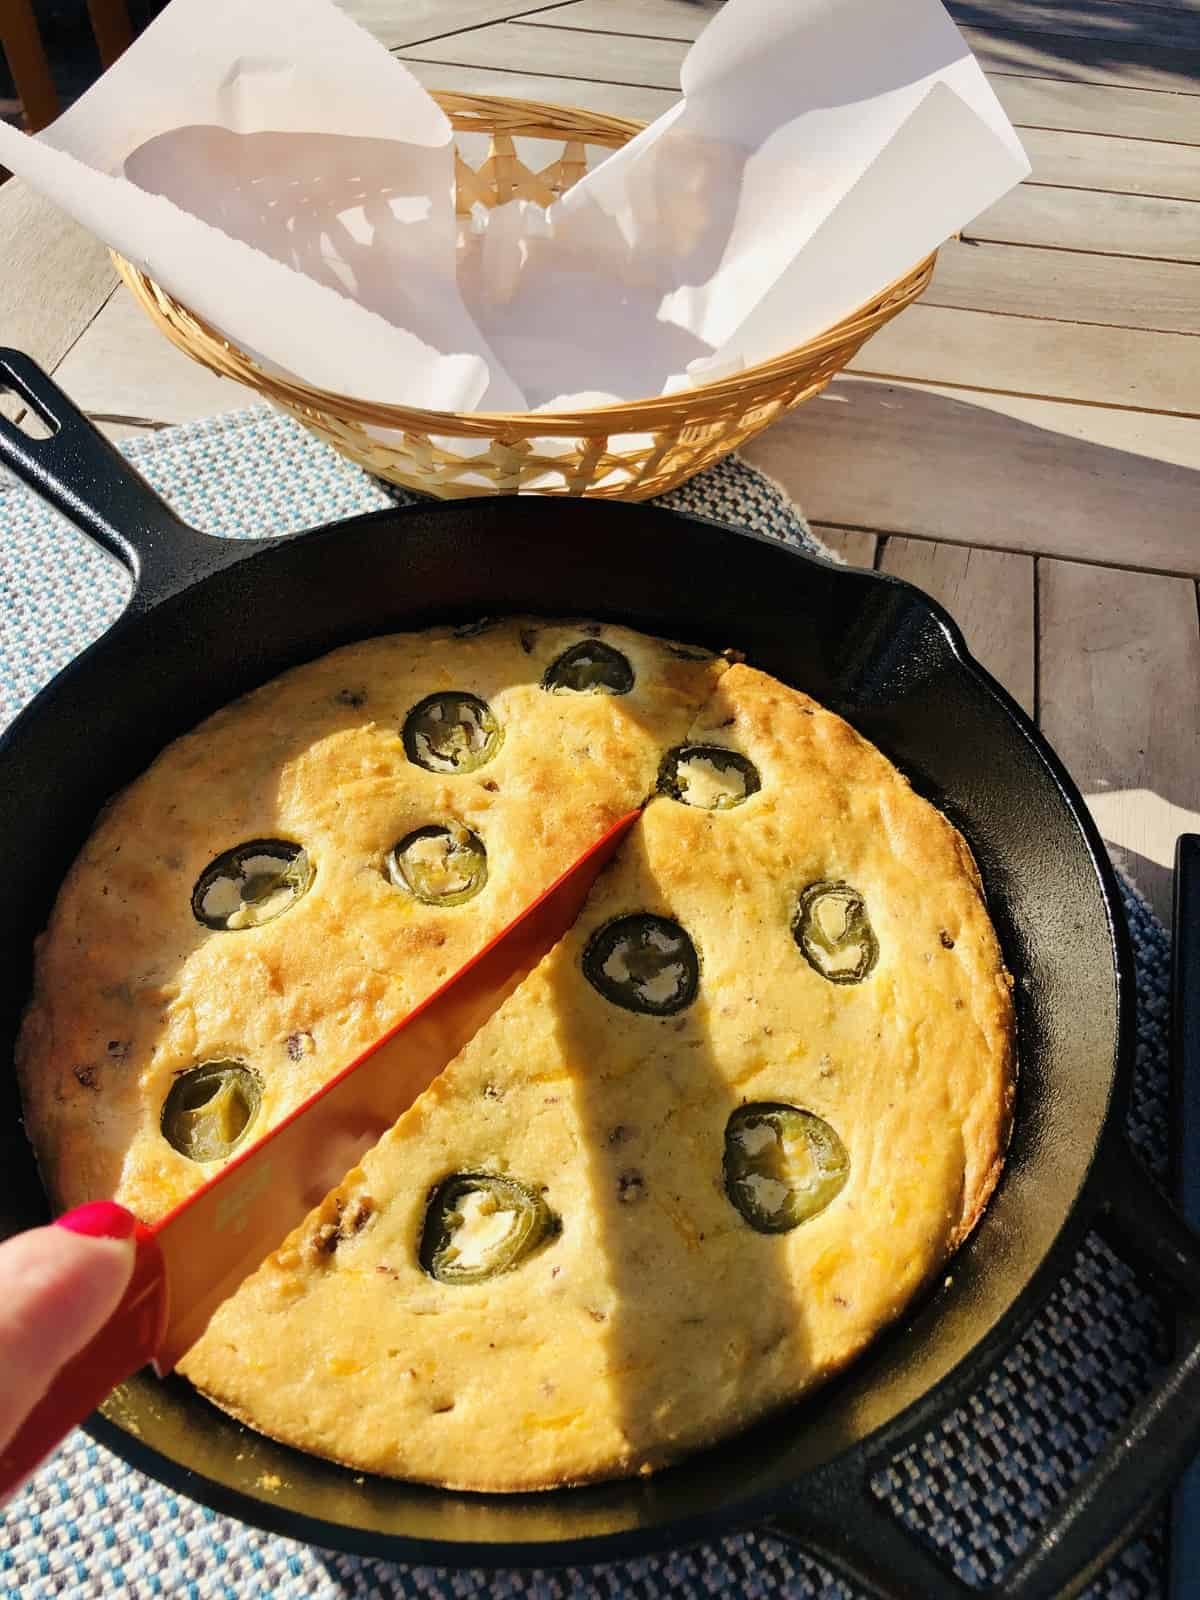 slicing keto cornbread with a red knife in a black cast iron skillet on a wooden table with a wicker basket with parchment paper